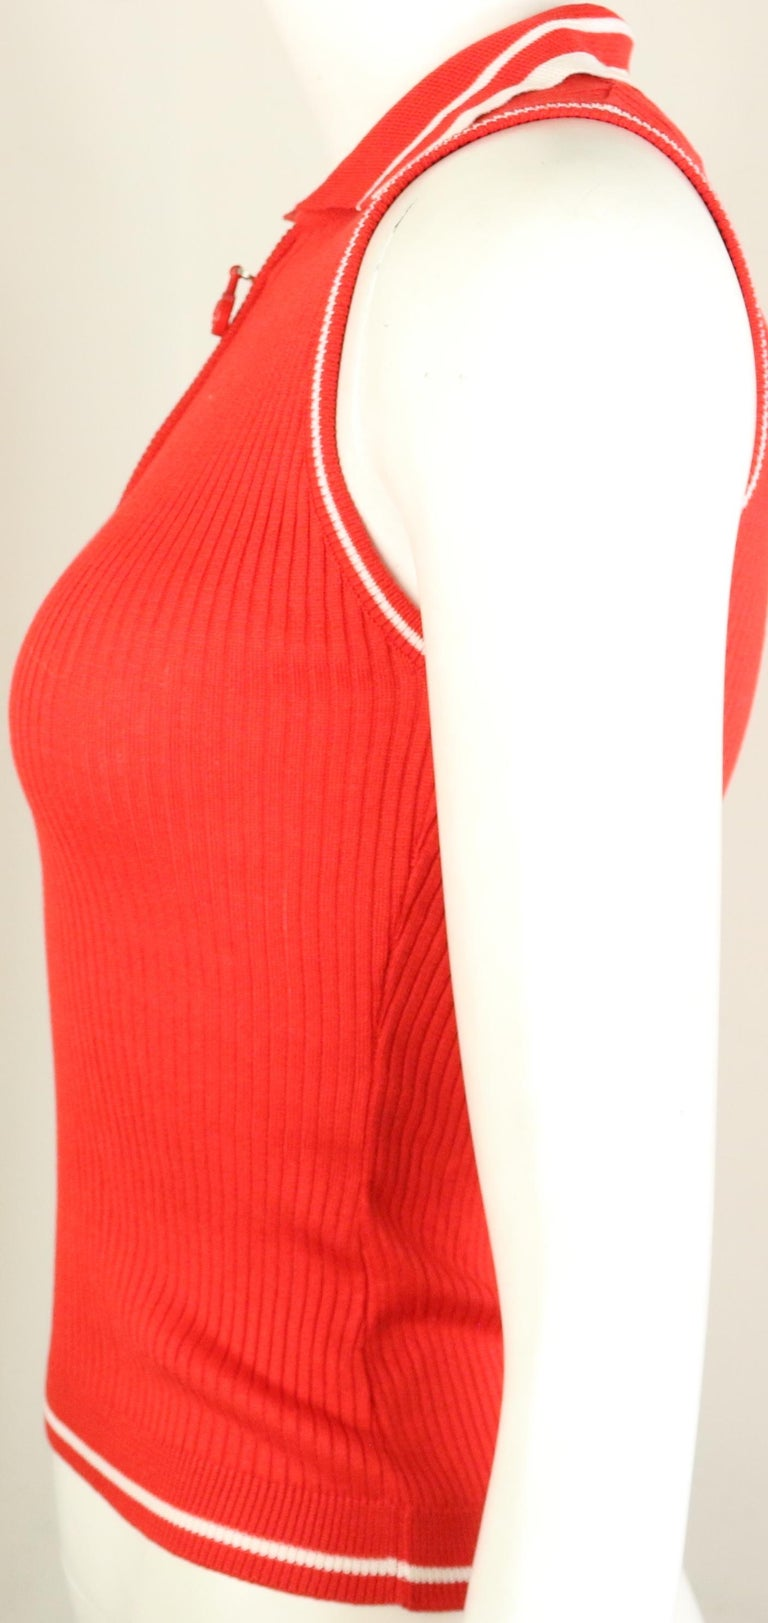 Gianni Versace Couture Red and White Knitted Sleeveless Top and Cardigan Twinset For Sale 5